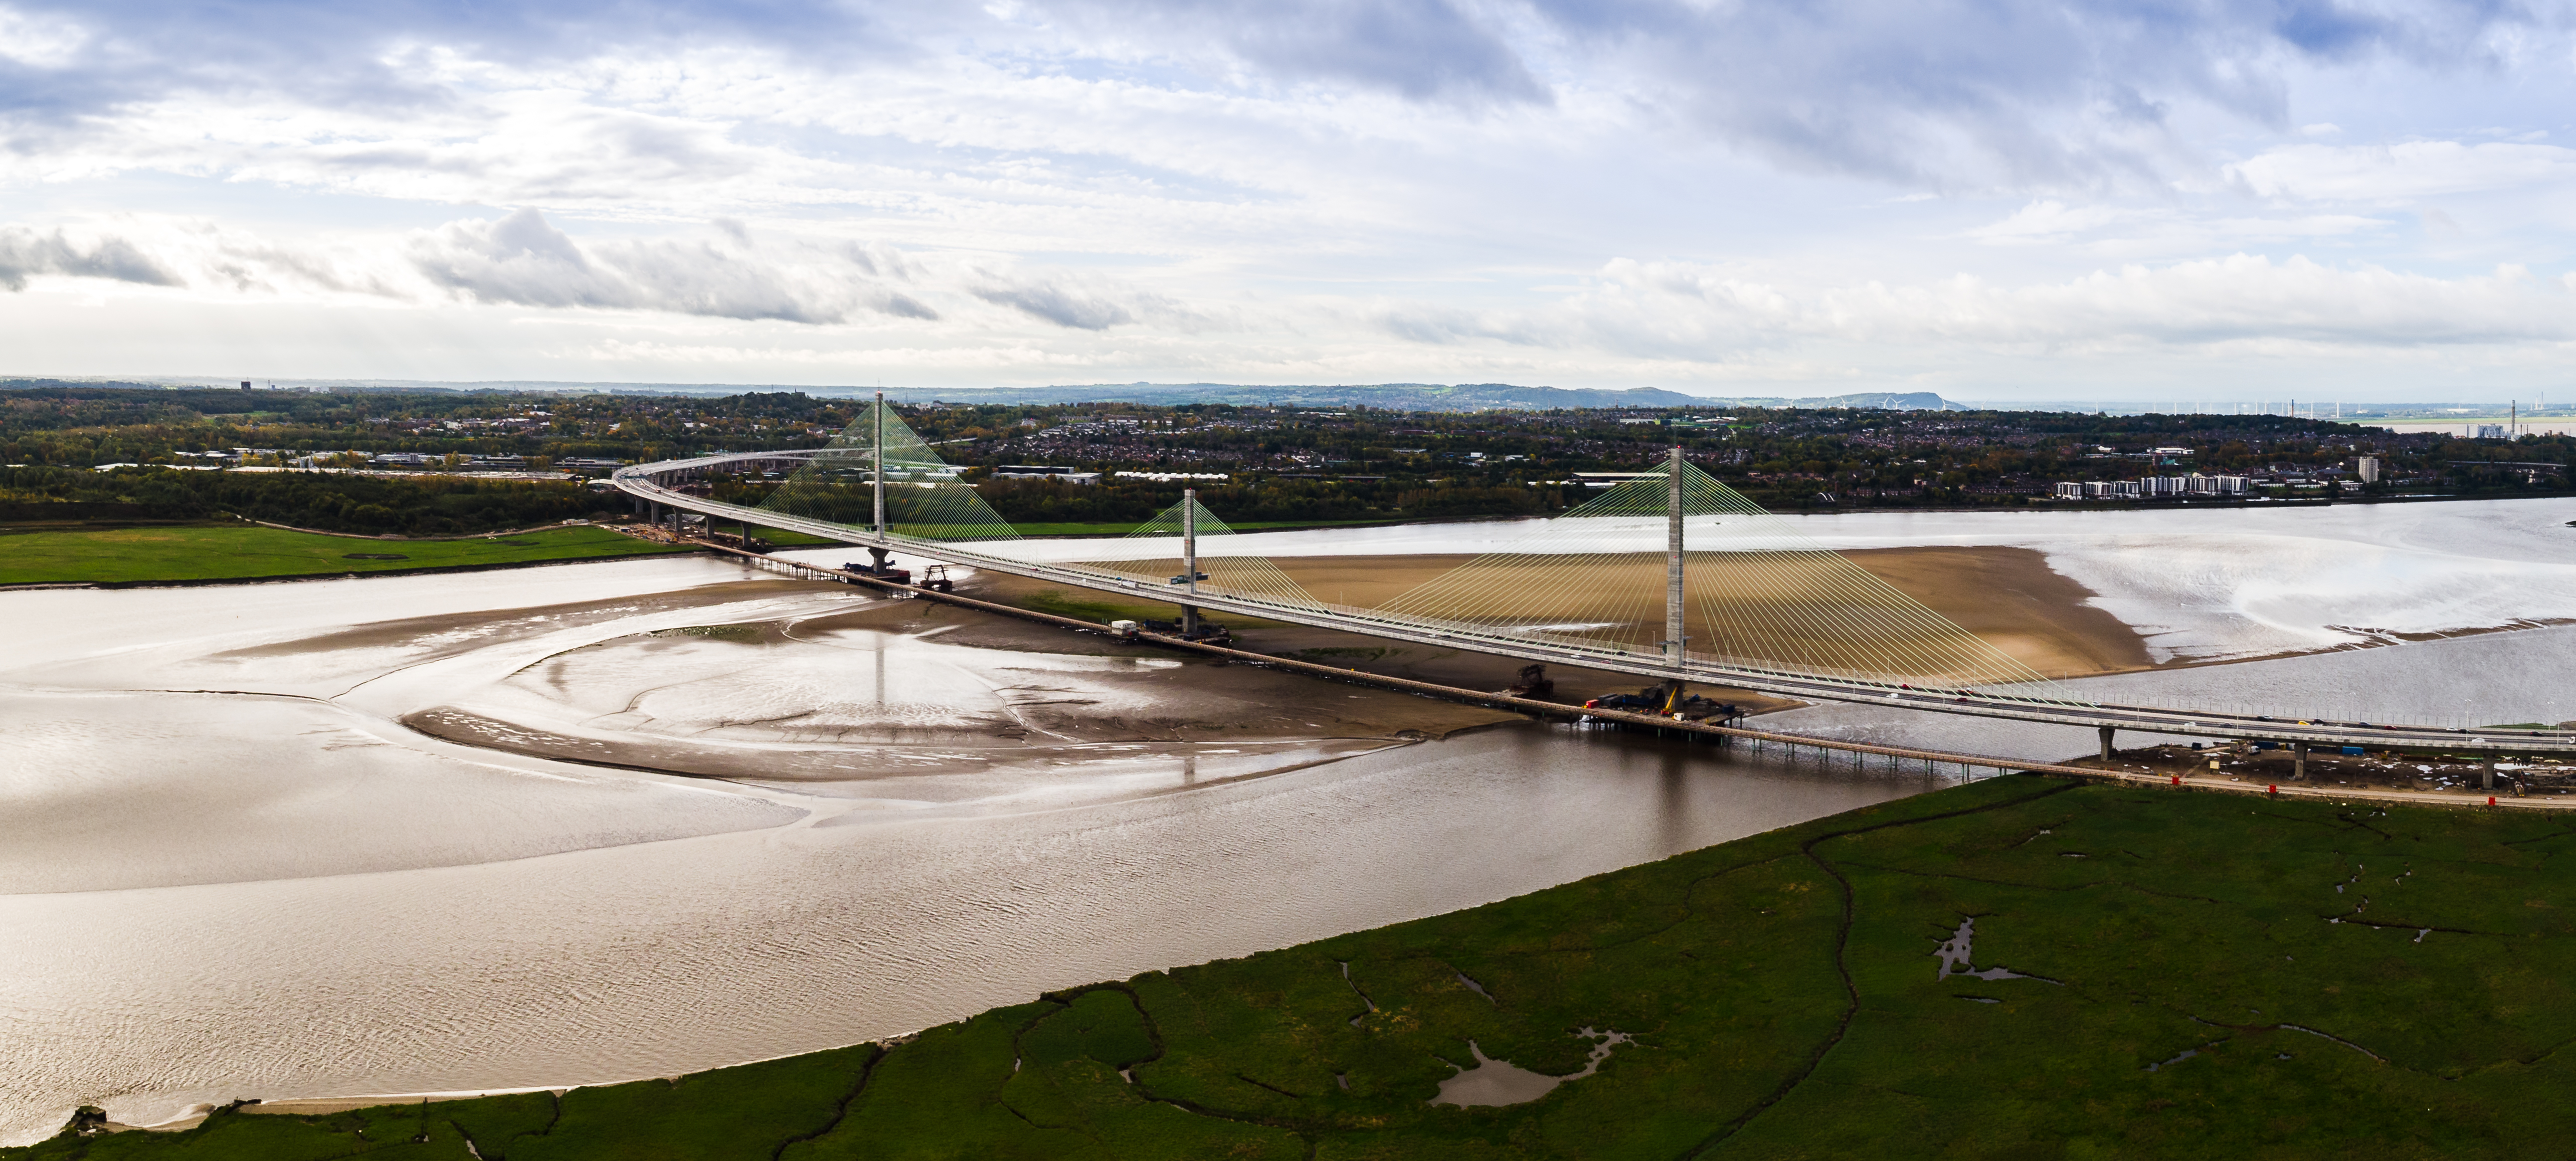 Emovis opens the free flow toll of the Mersey Gateway Bridge in the United Kingdom